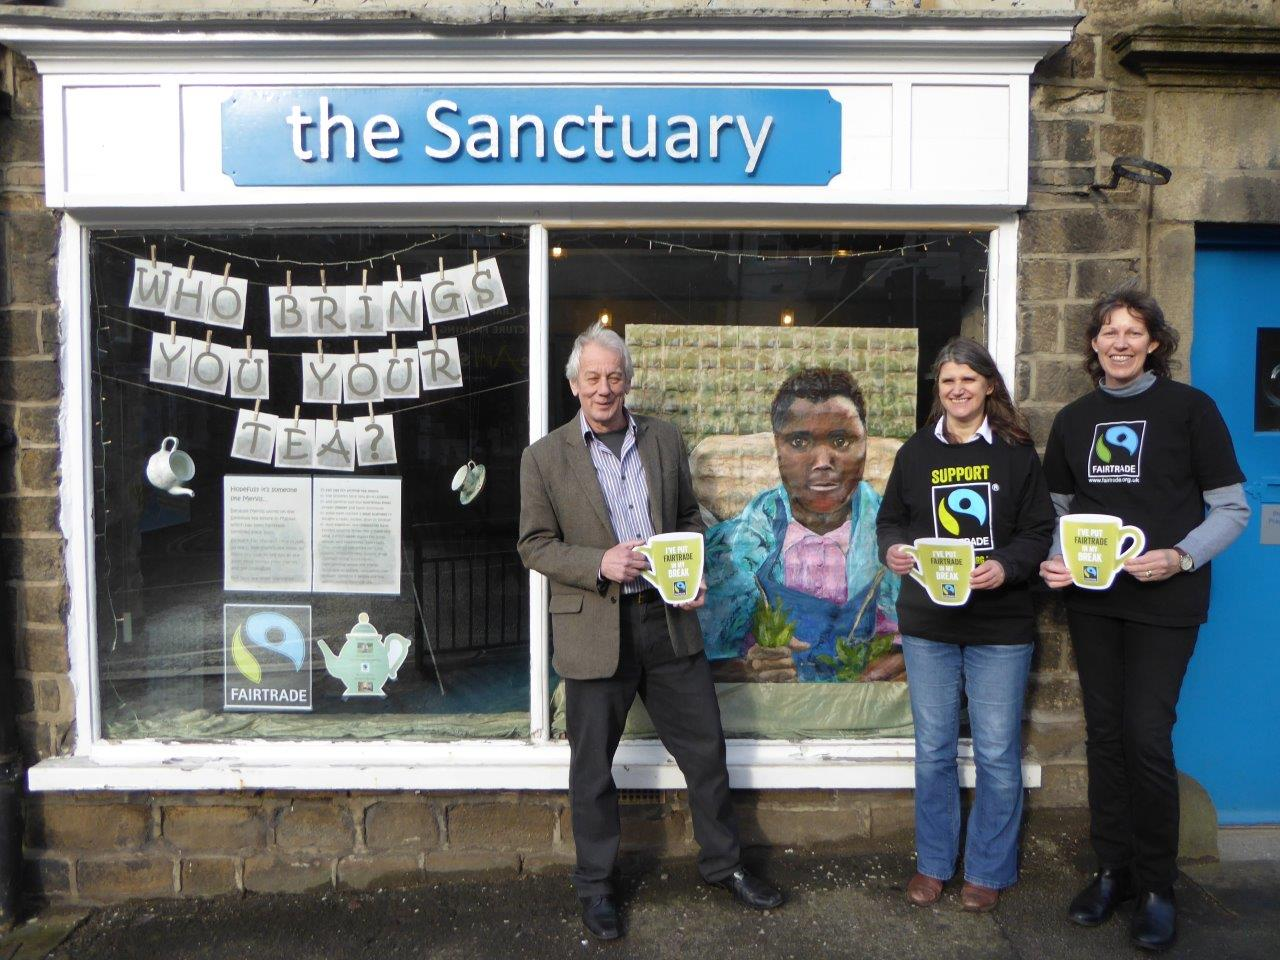 Ilkley Fairtrade group members & Ilkley Oxfam manager with the Sanctuary's Fairtrade tea window - hoping to give Malawian tea picker Mervis Kejinga a break. Artist Barbara Macnish.